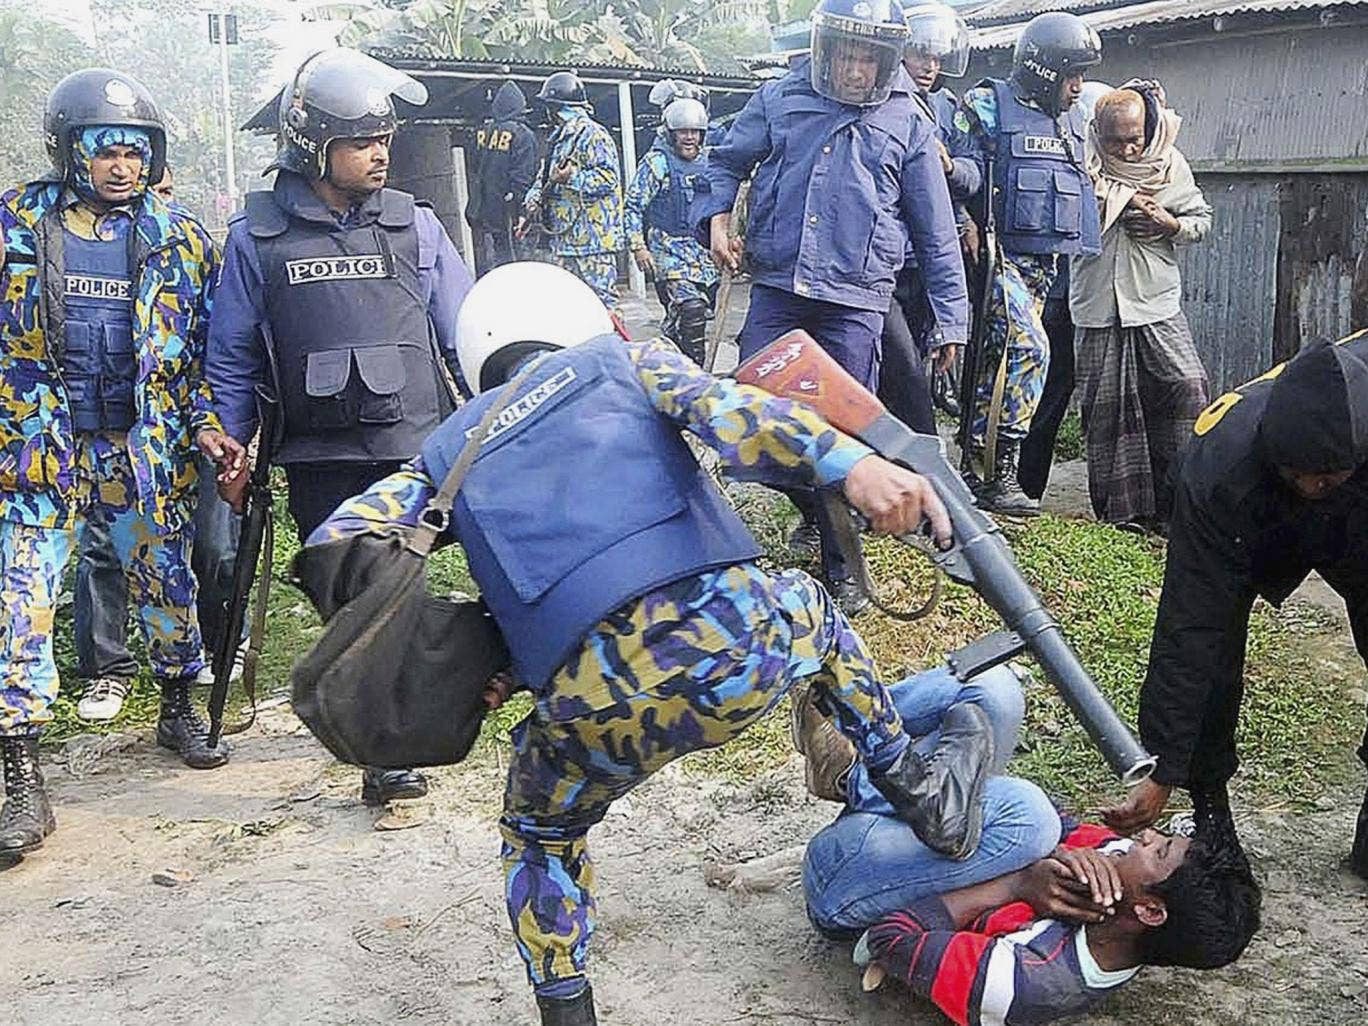 A clash between police and protesters after a crowd attacked polling booths in Bogra in the north